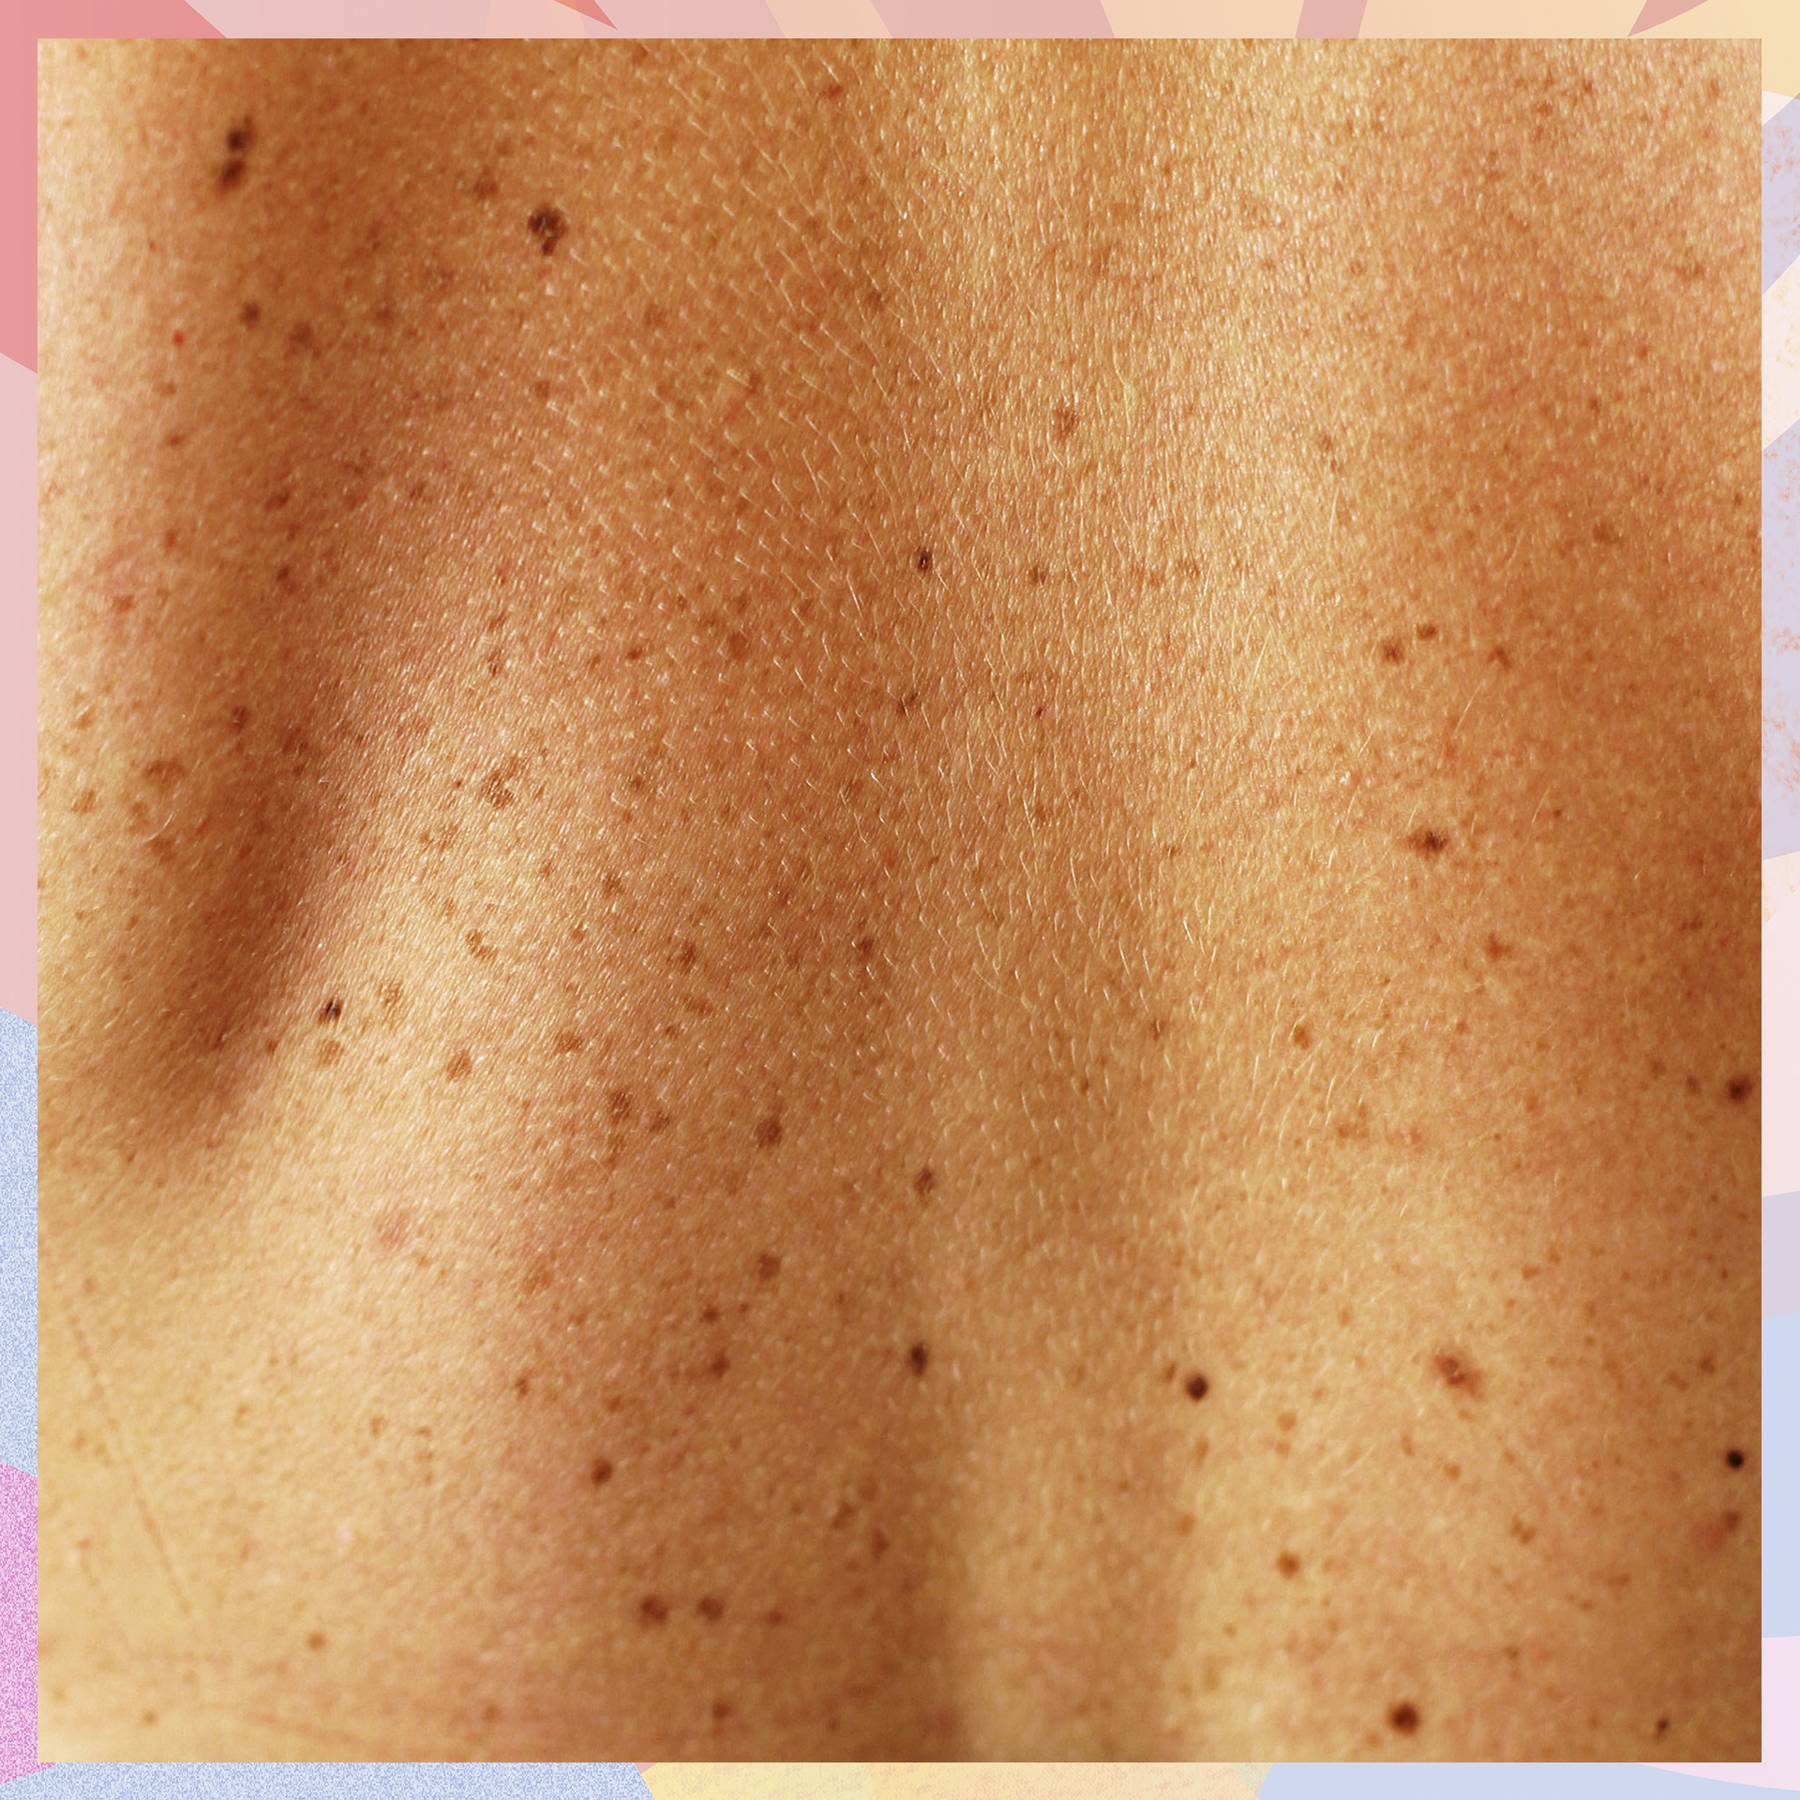 The ultimate guide to moles (and how to figure out which ones need checking out)